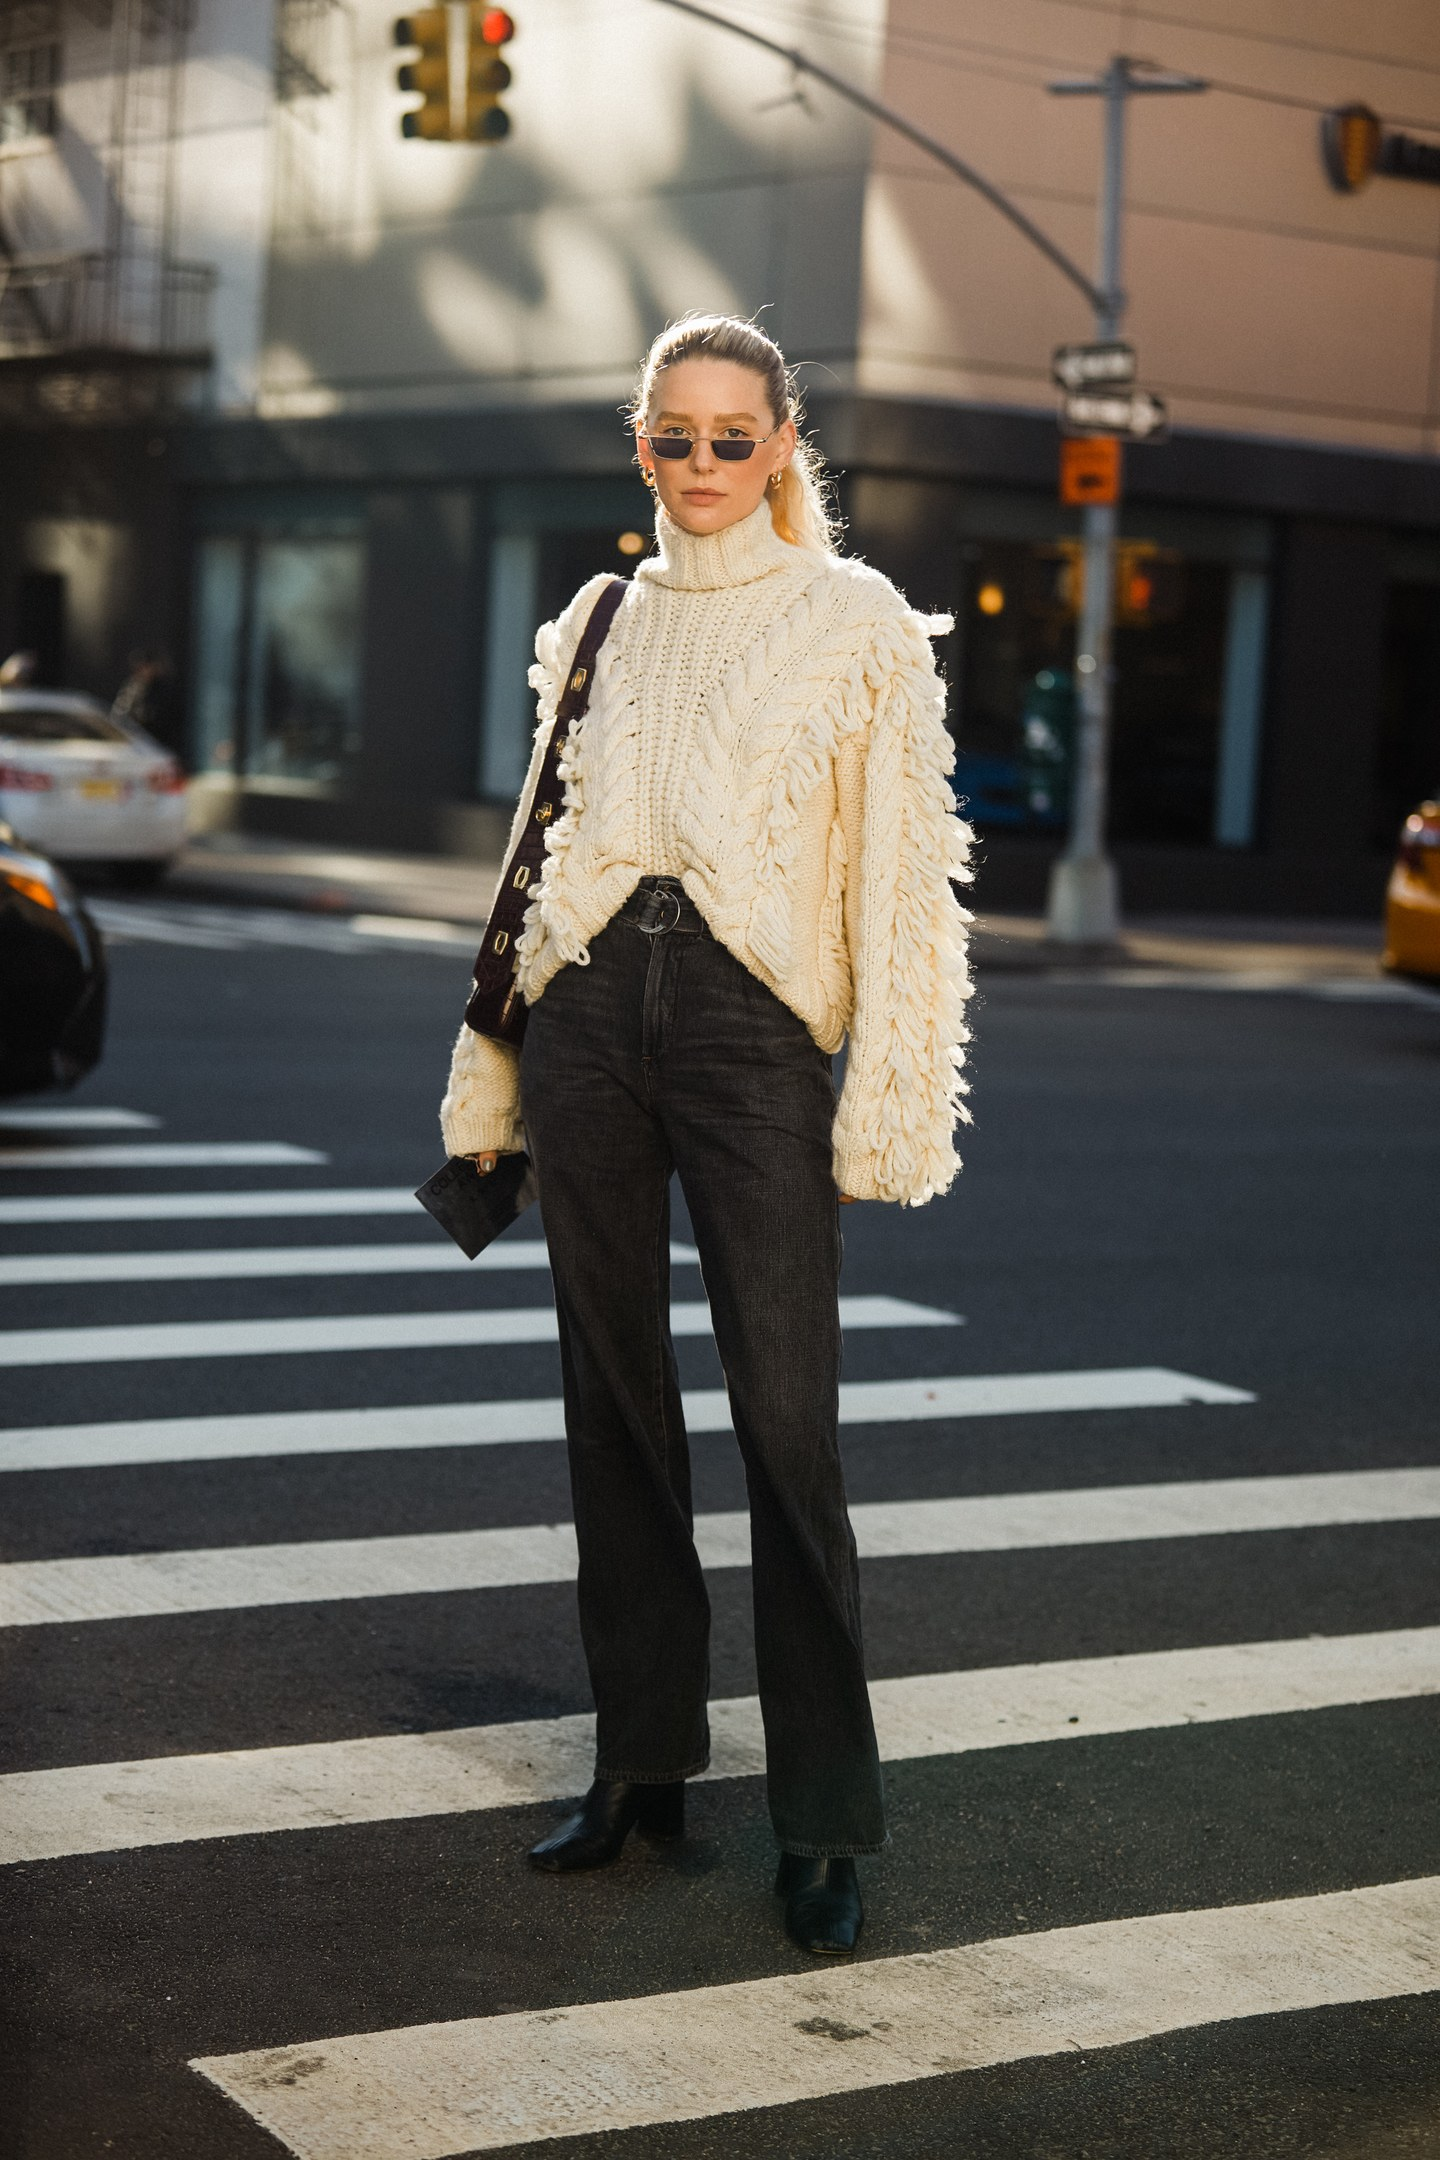 cable-knit sweater with black jeans outfit